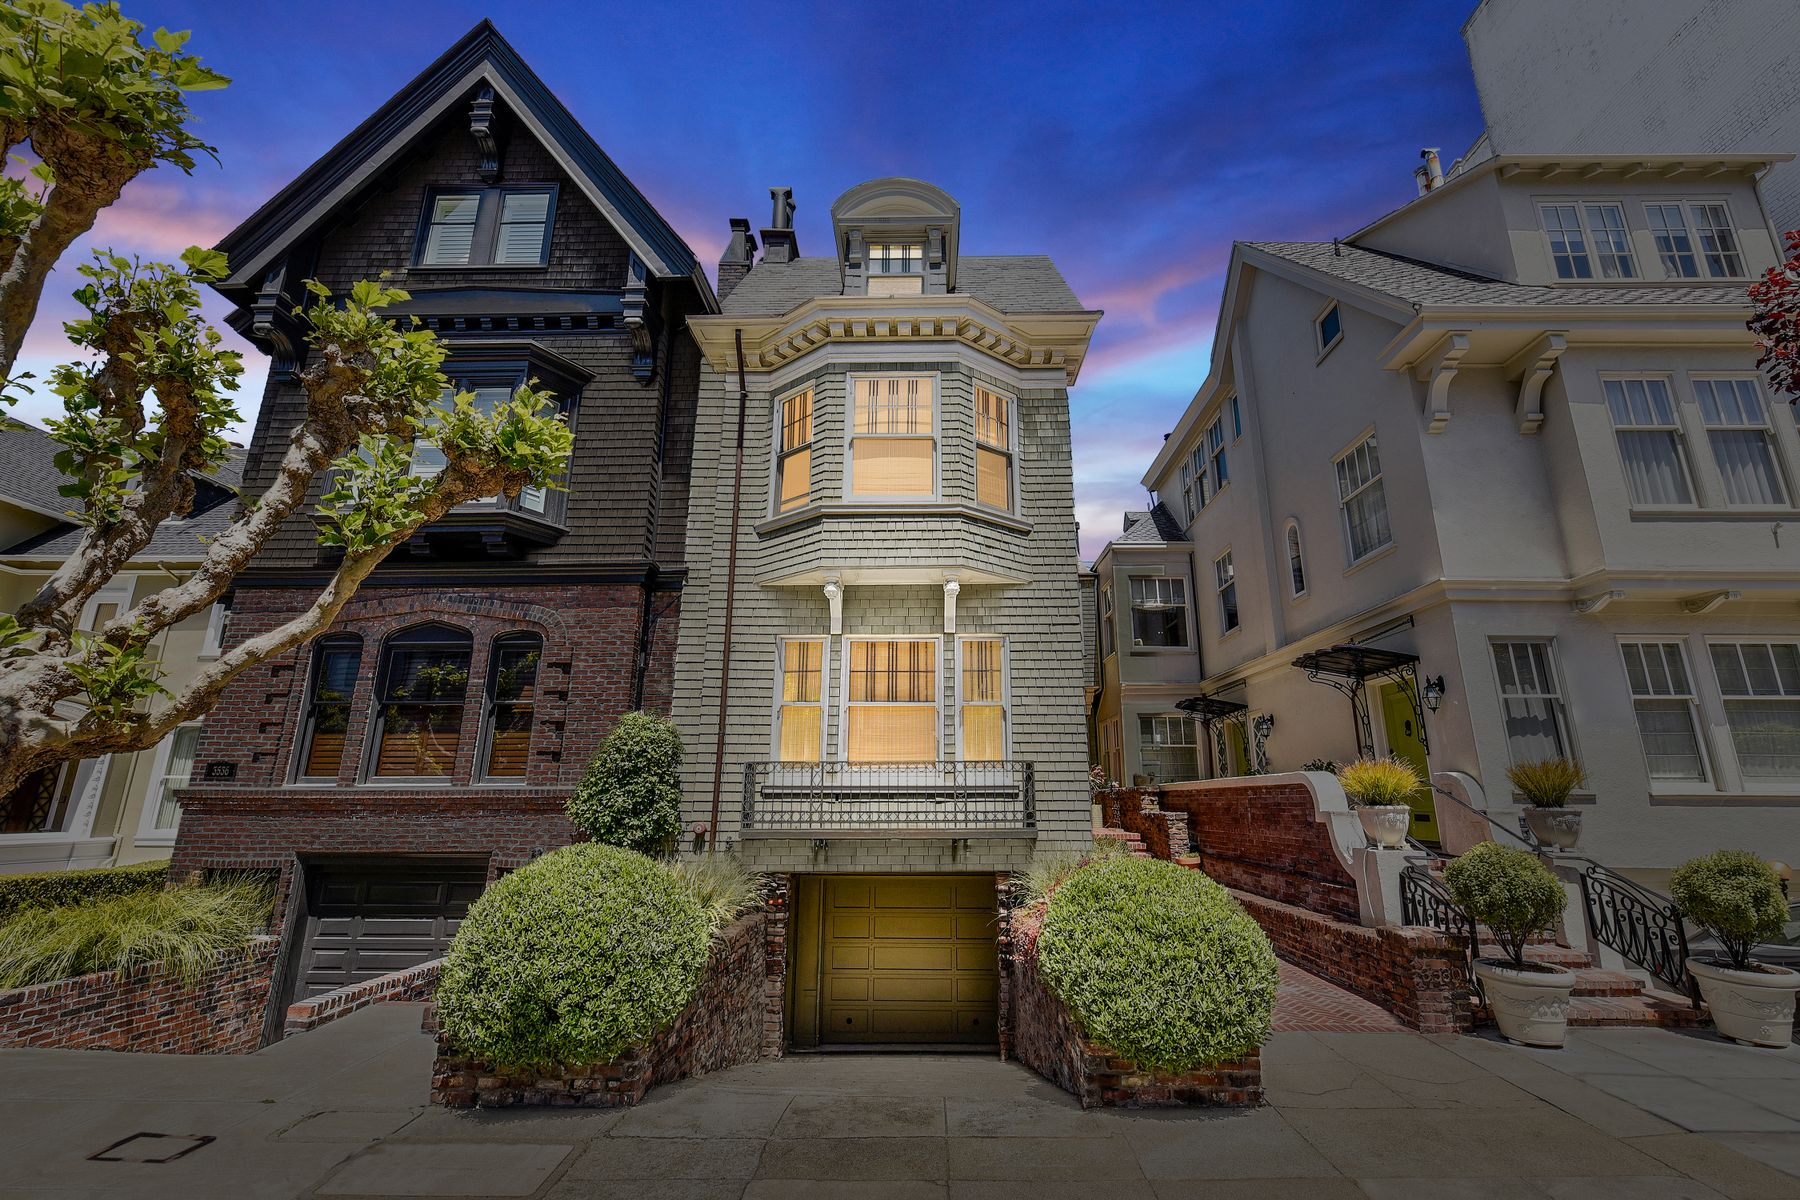 Vivienda unifamiliar En venta en 3530 Washington St, San Francisco, California ,94118  , EE.UU.